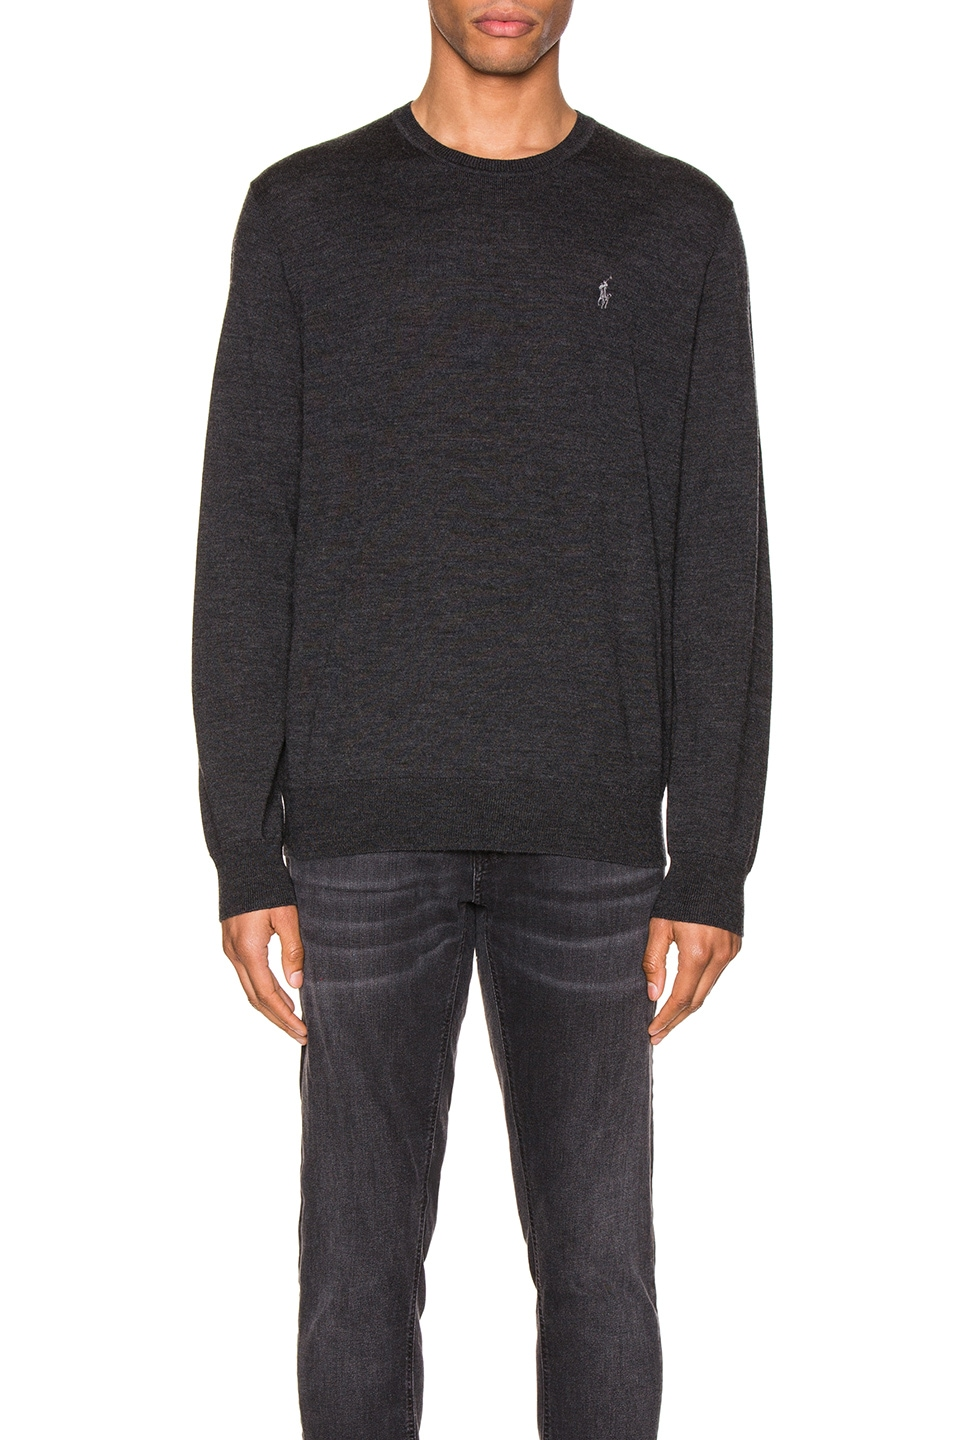 Image 1 of Polo Ralph Lauren Merino Wool Long Sleeve Knit in Dark Granite Heather